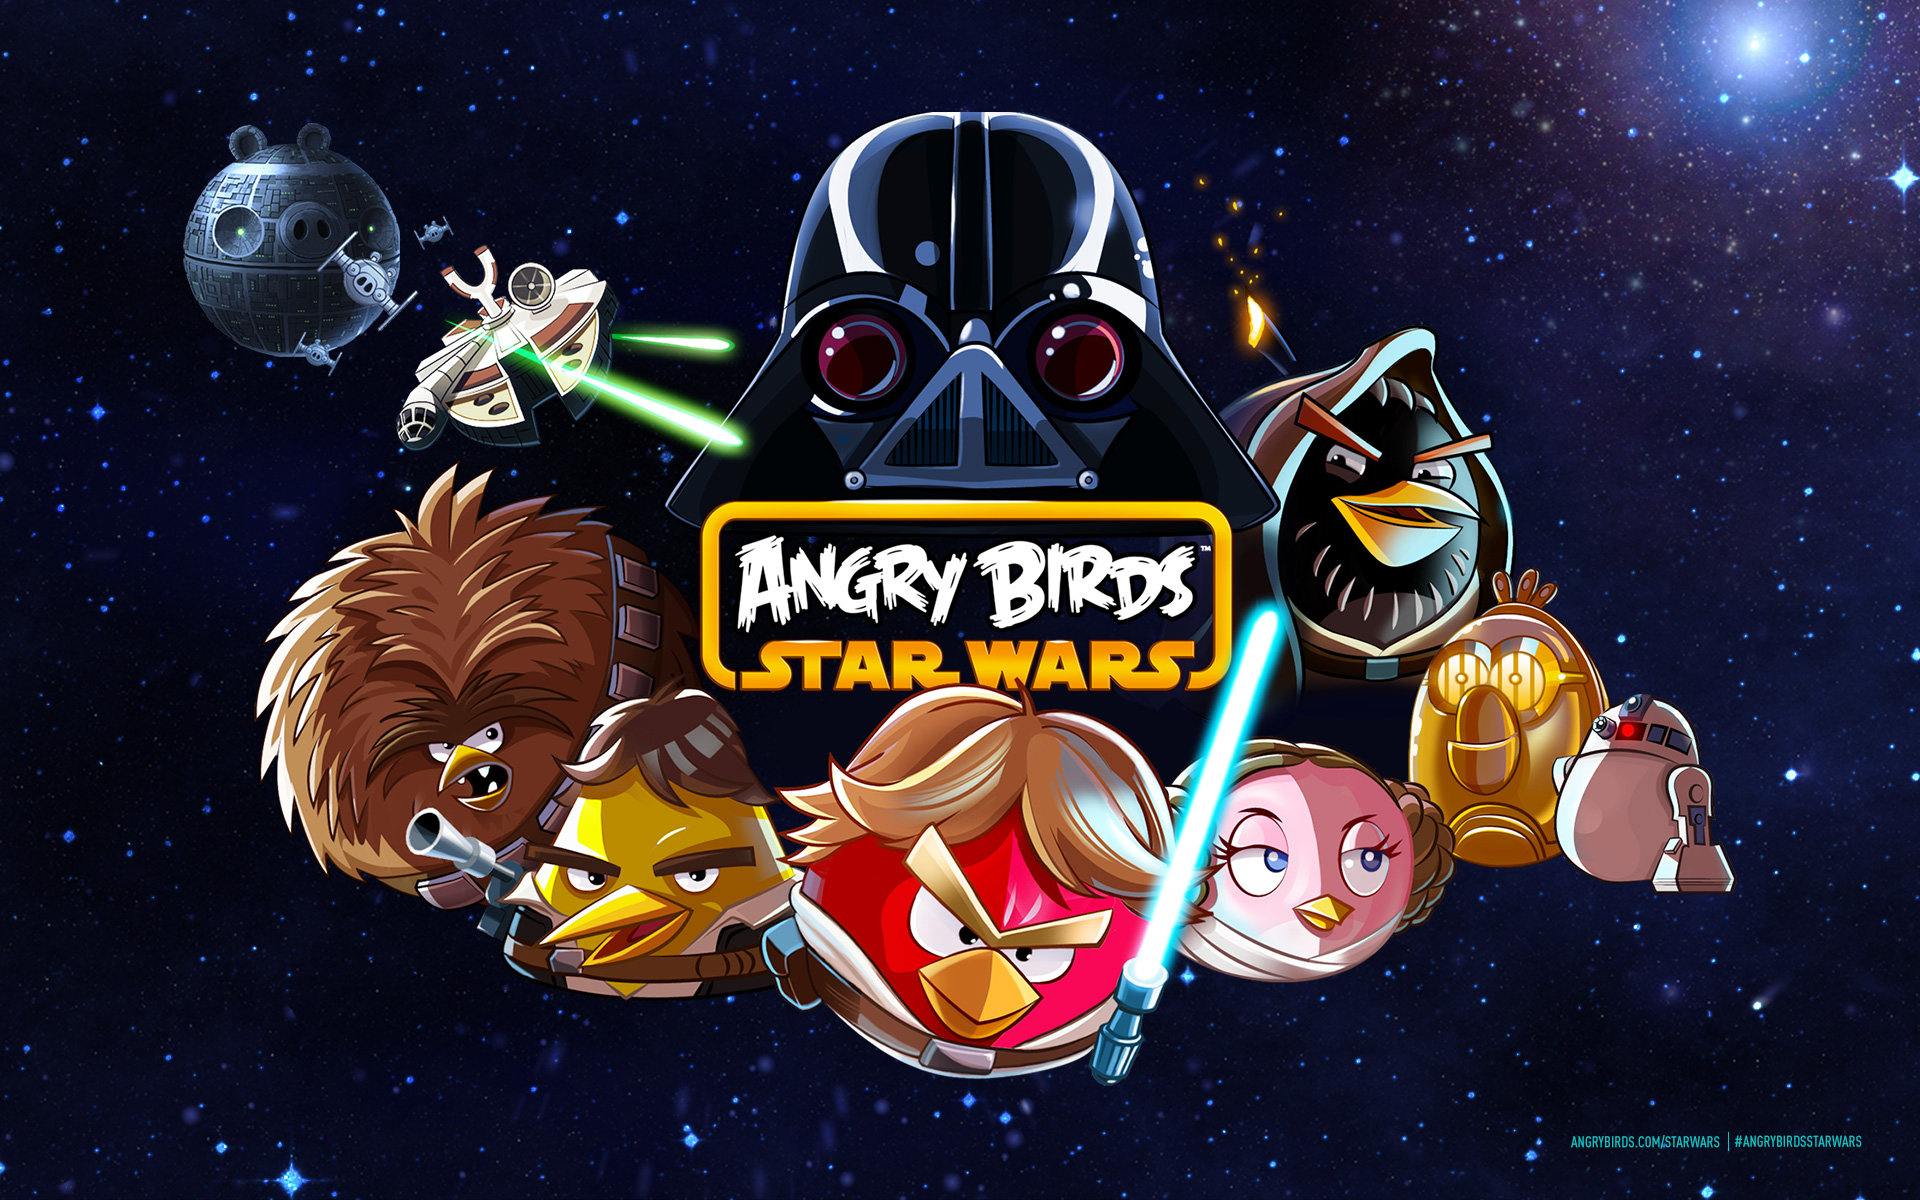 Angry birds angry birds star wars wallpaper